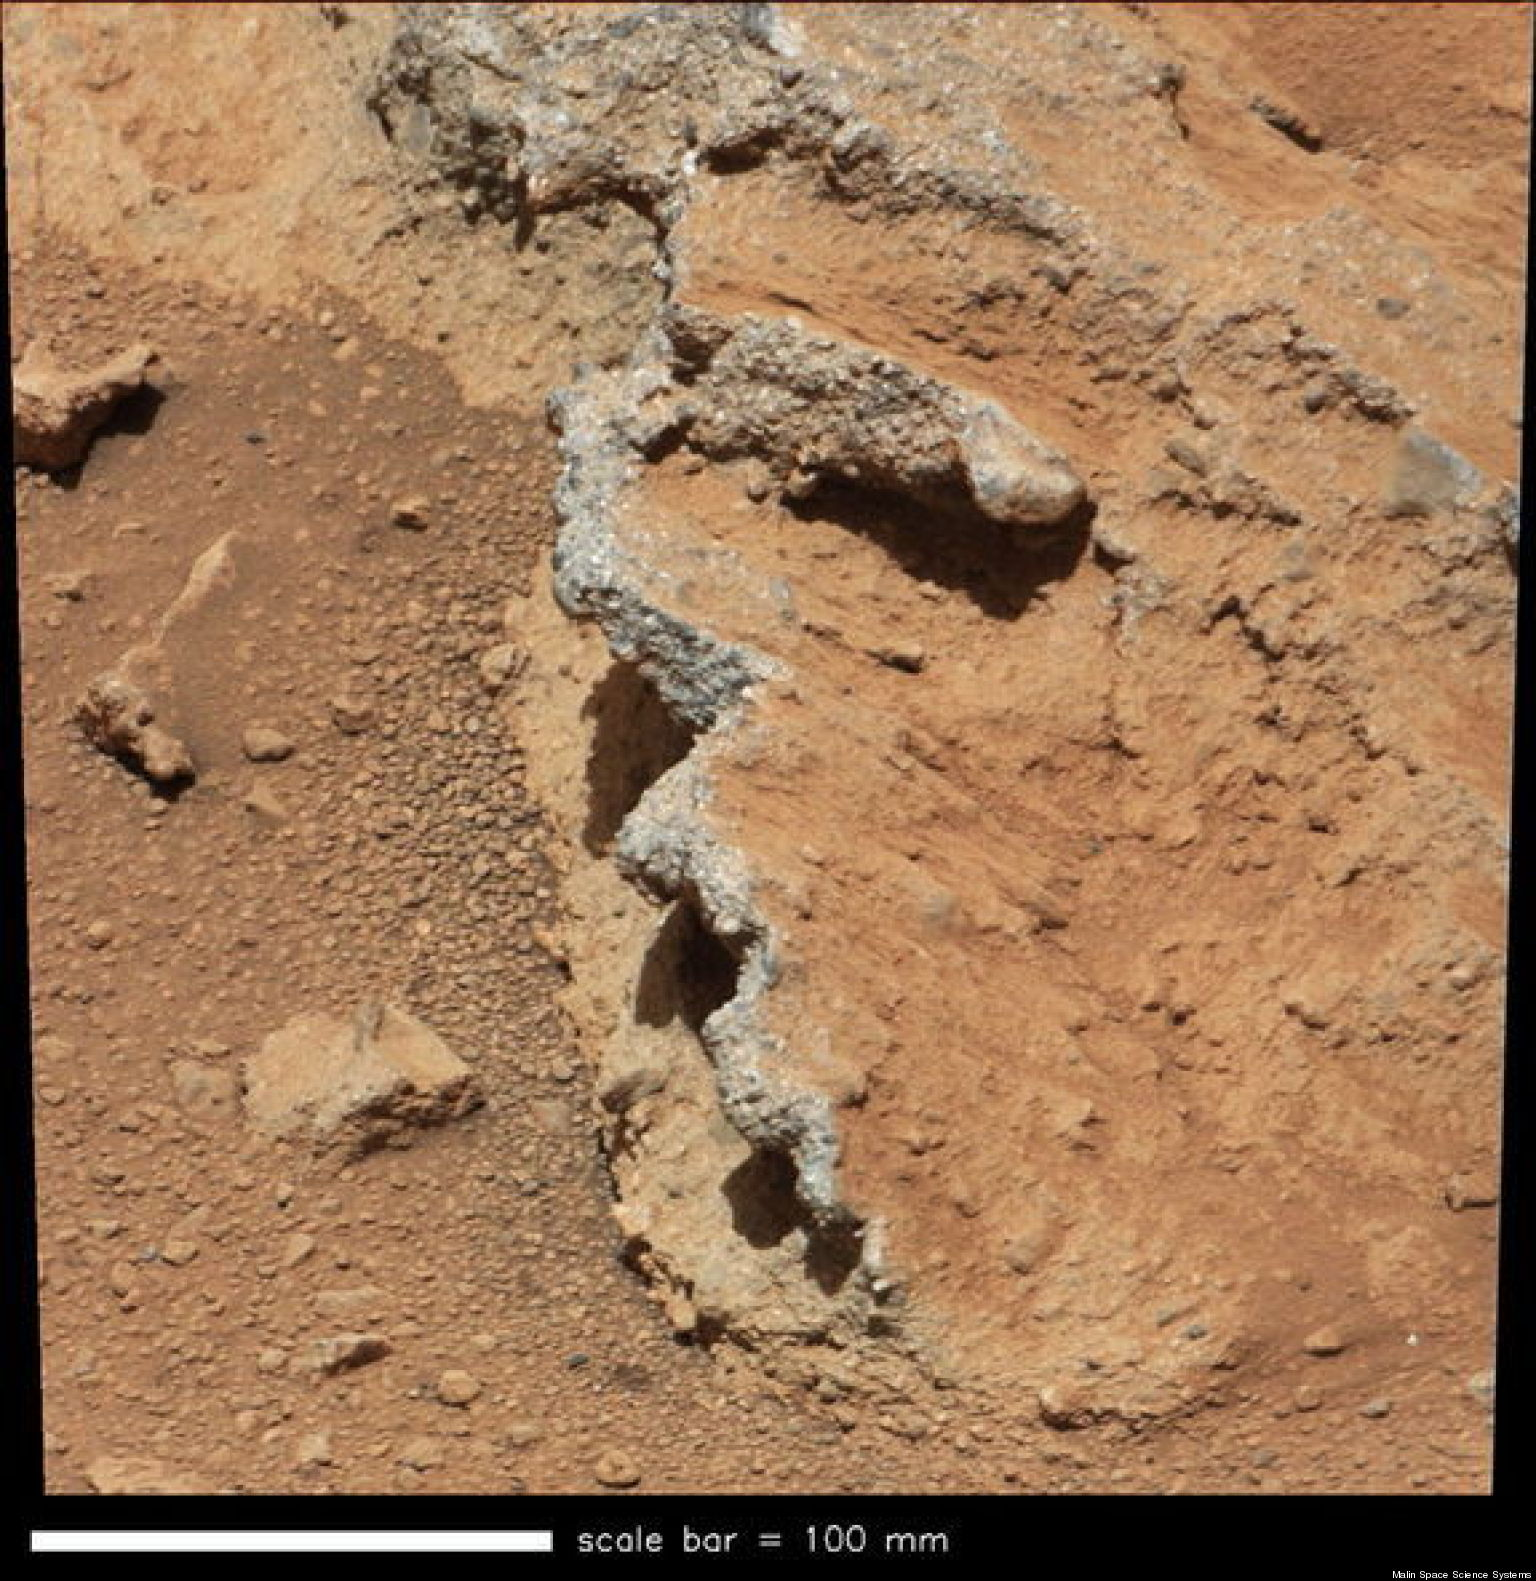 mars rover discovers - photo #13